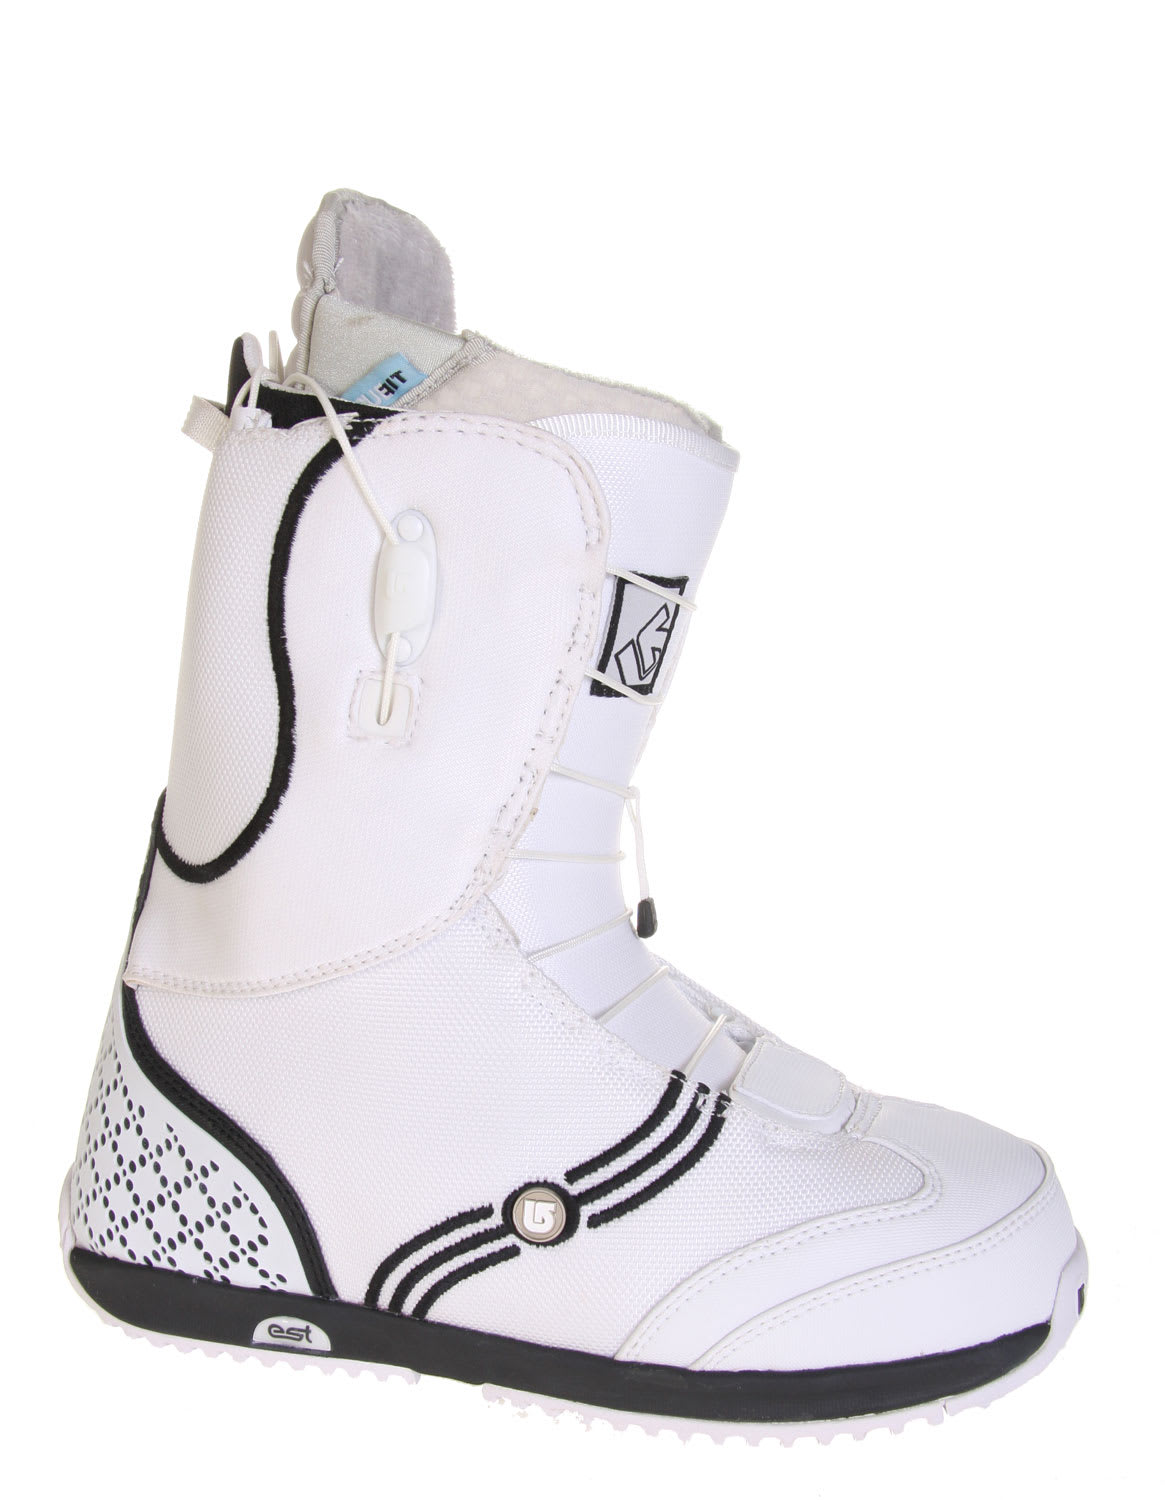 Shop for Burton Axel Snowboard Boots White - Women's